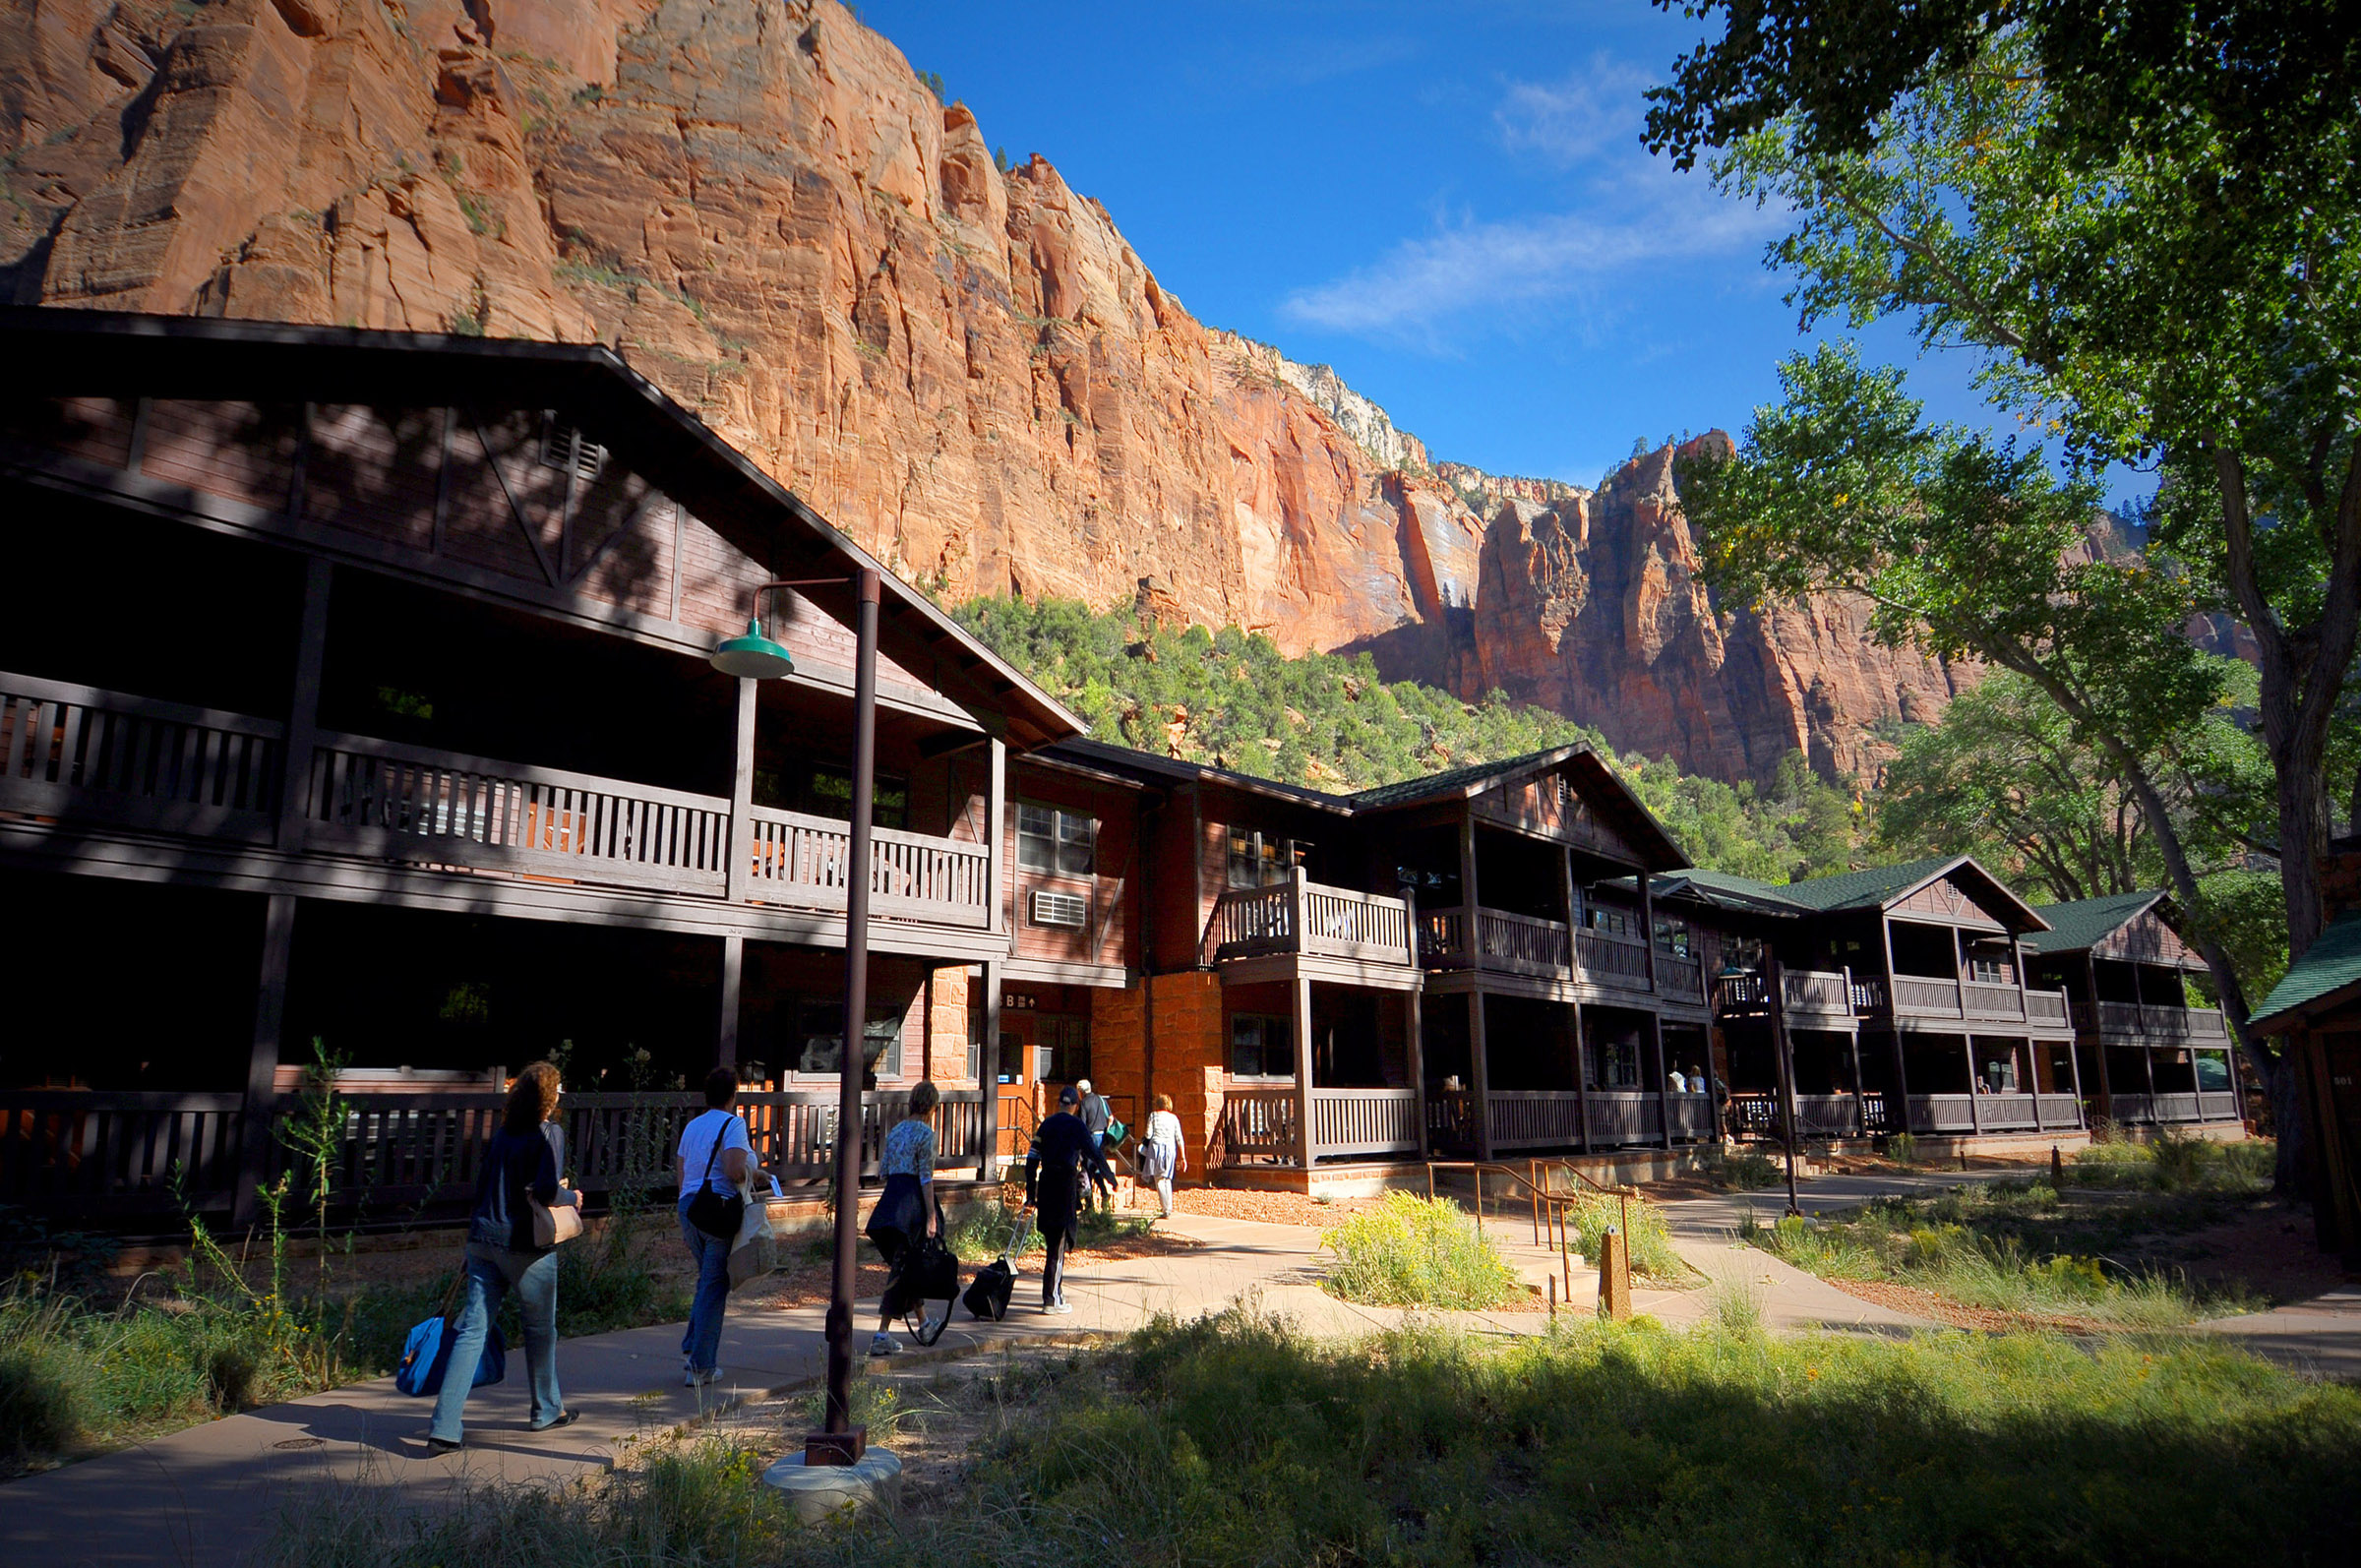 lodge article zion cabins spectacular cnn national travel park lodges index